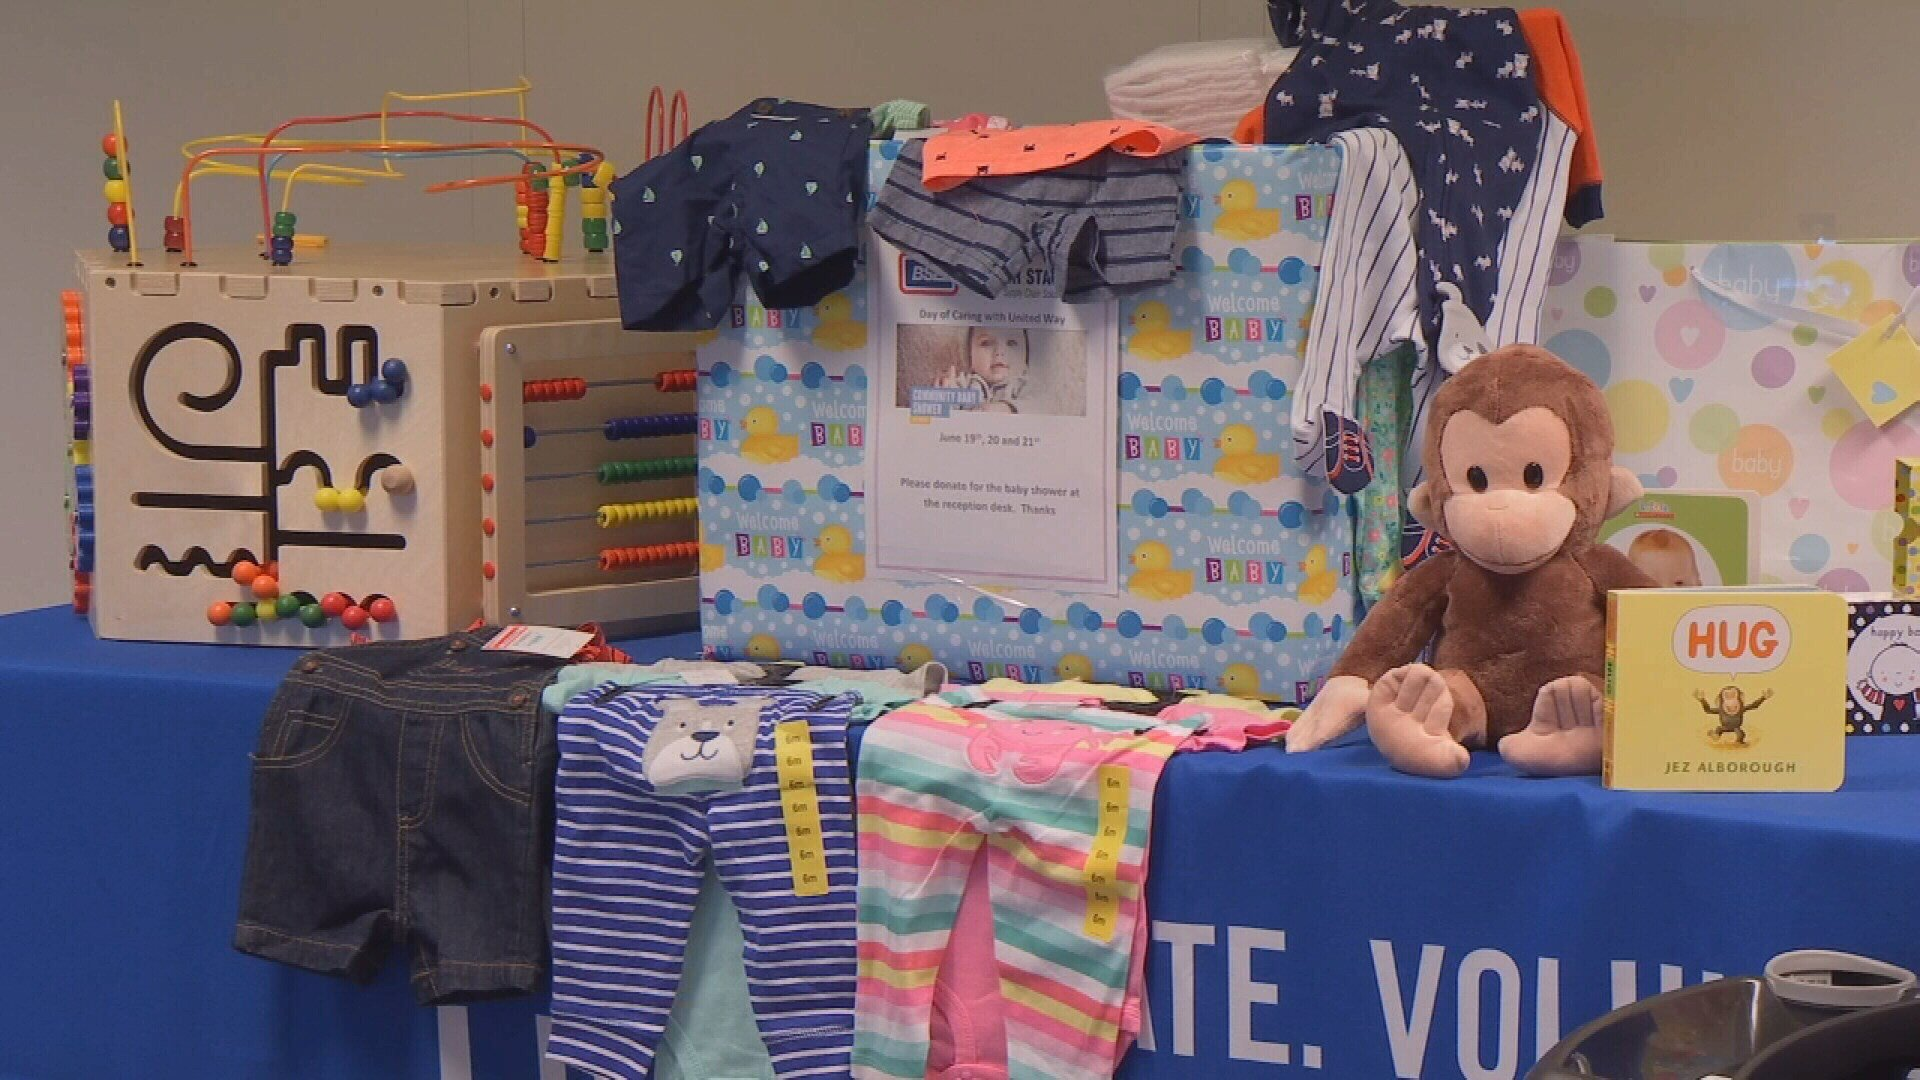 munity baby shower to help low in e Yellowstone County fami